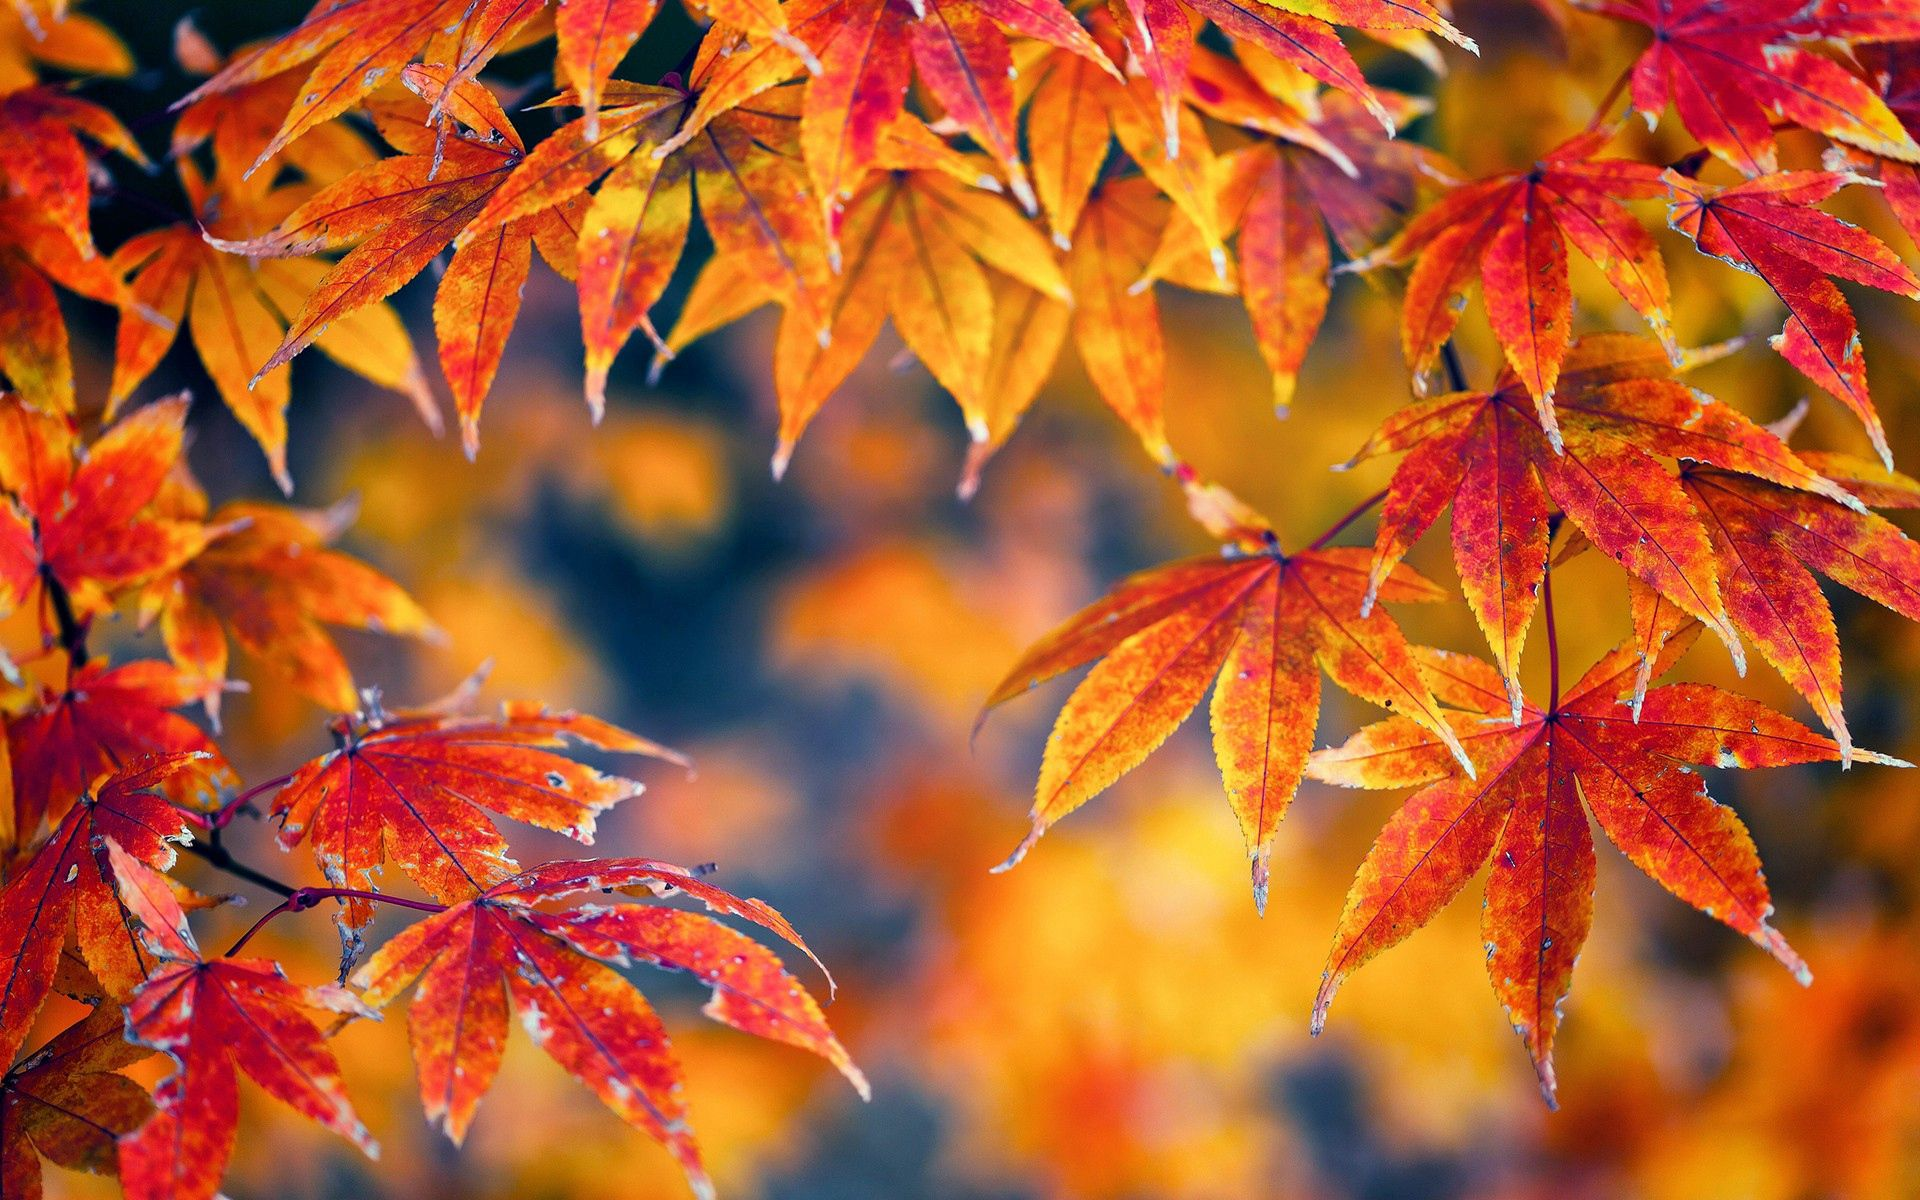 107602 download wallpaper Macro, Leaves, Maple, Light Coloured, Light, Autumn screensavers and pictures for free